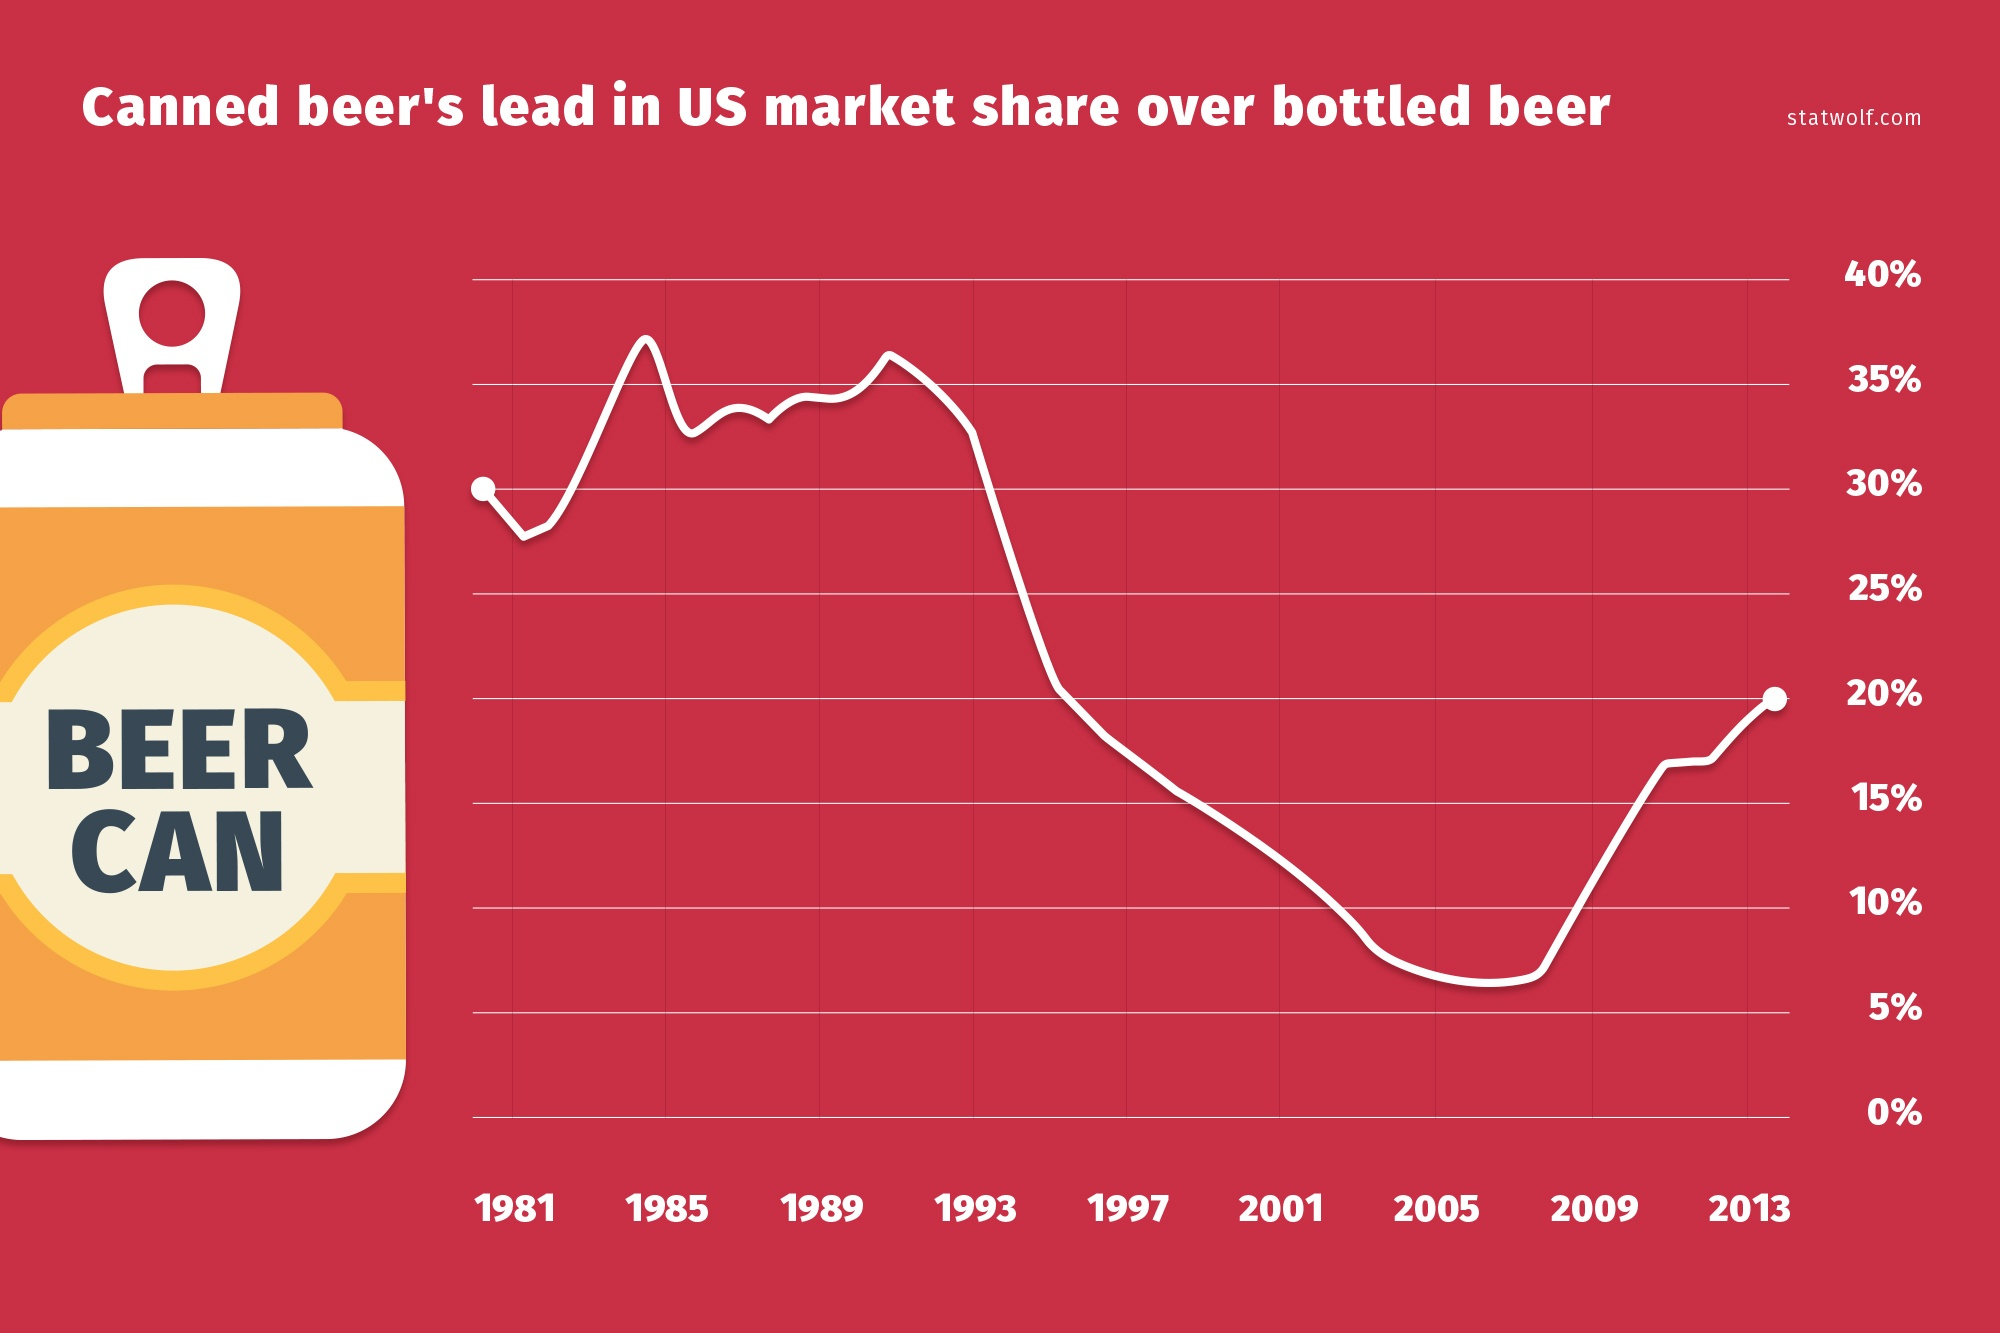 Canned Beer's Lead in Us Market Share Over Bottled Beer